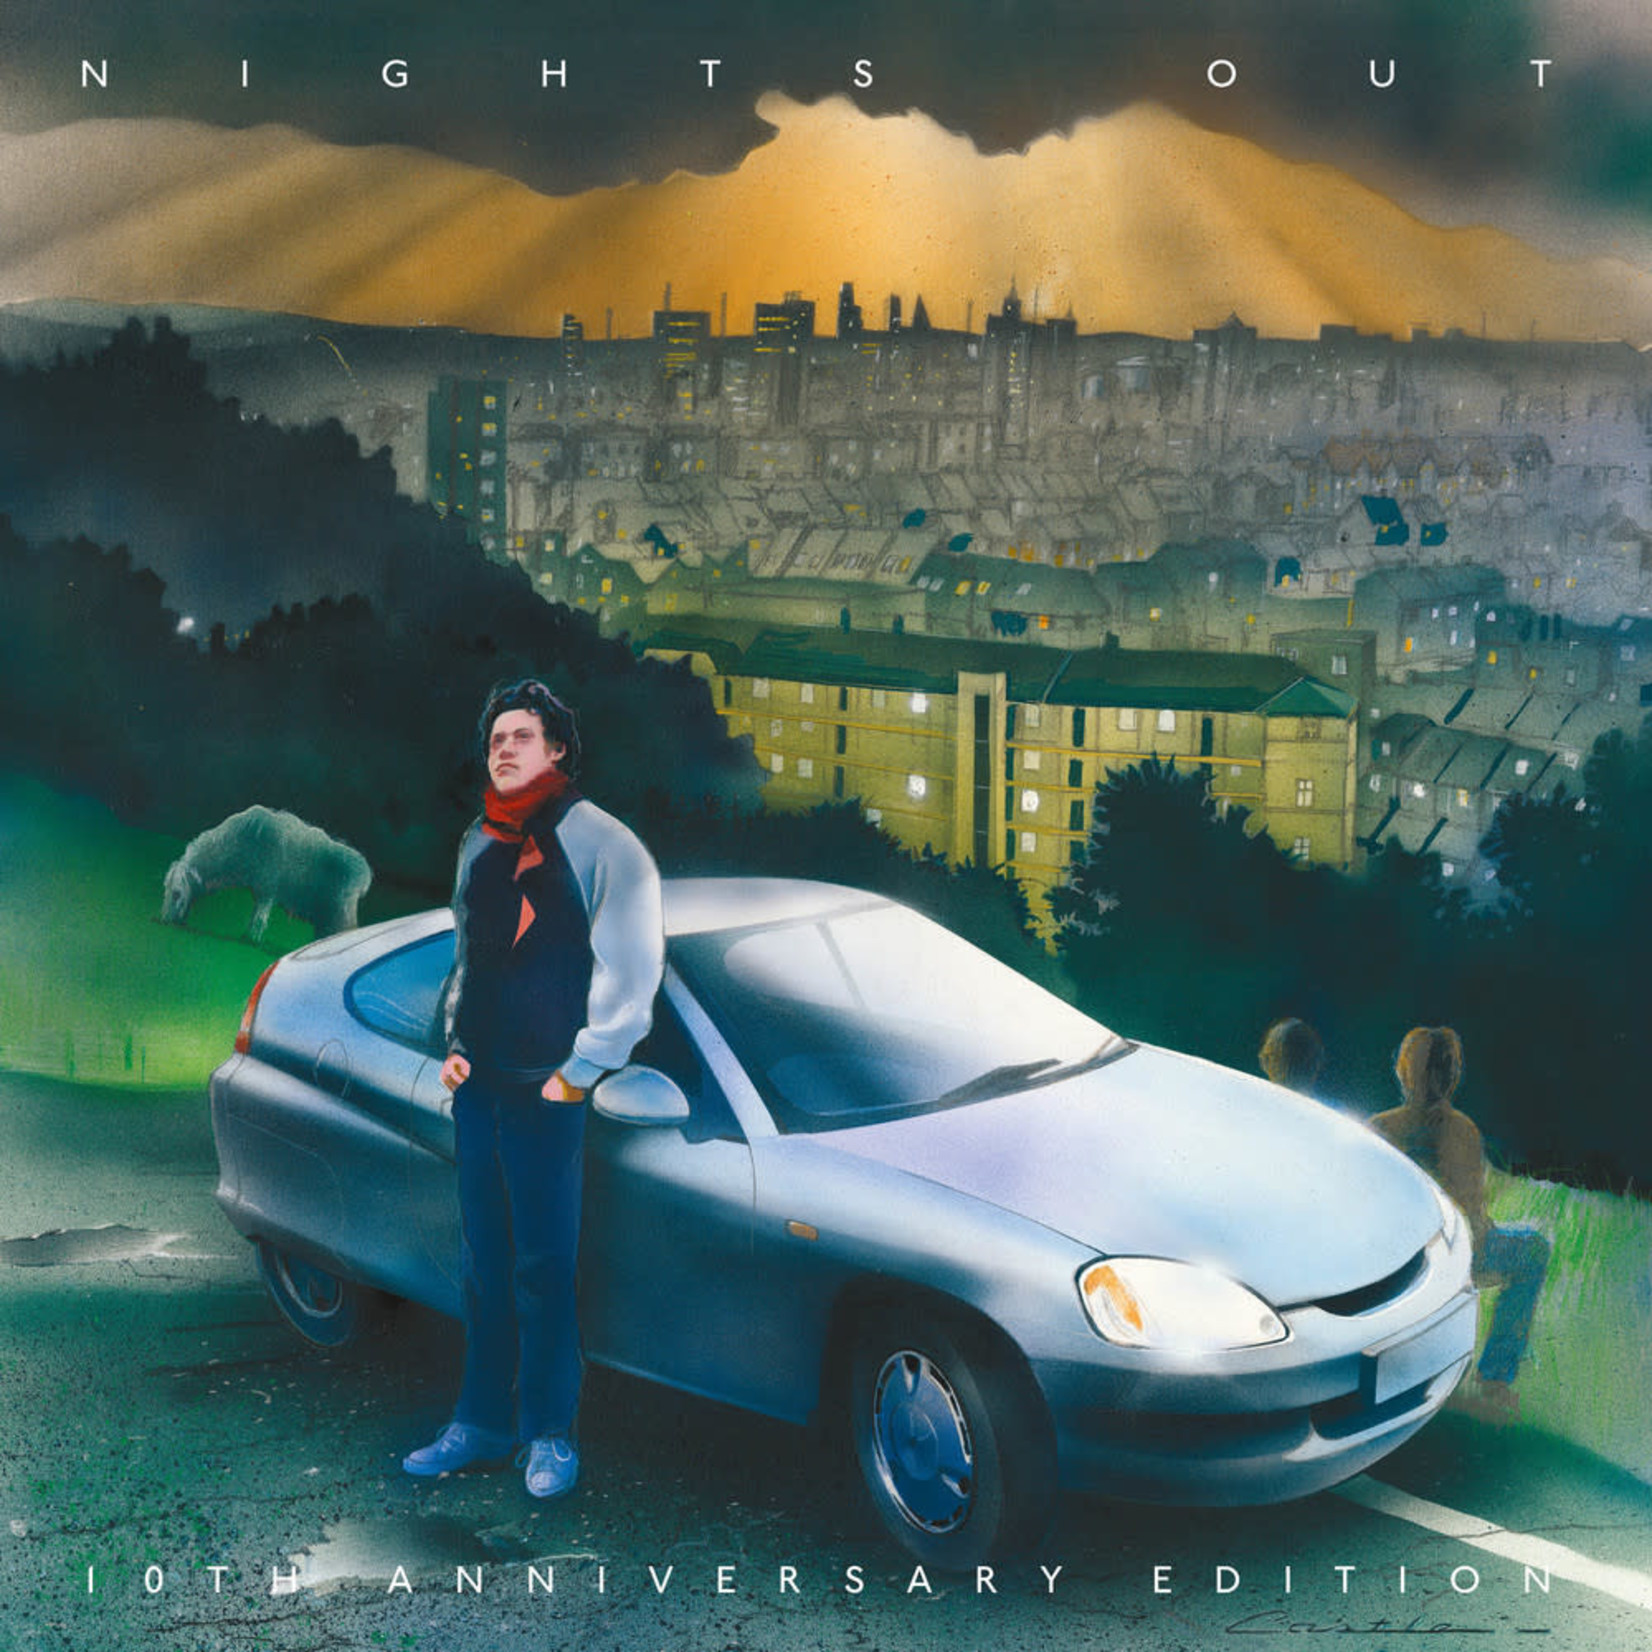 [New] Metronomy: Nights Out (10th Anniversary Ed.)